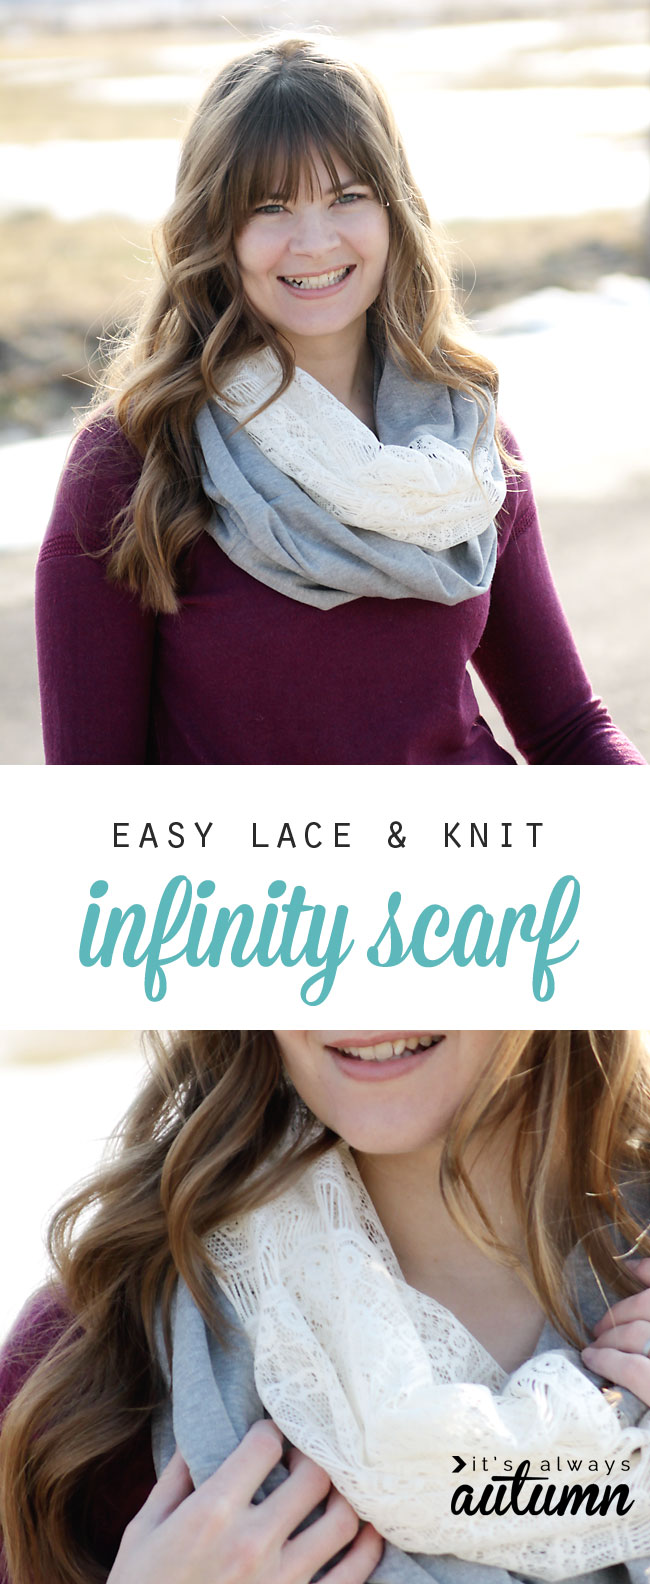 woman wearing an easy to sew lace and knit infinity scarf